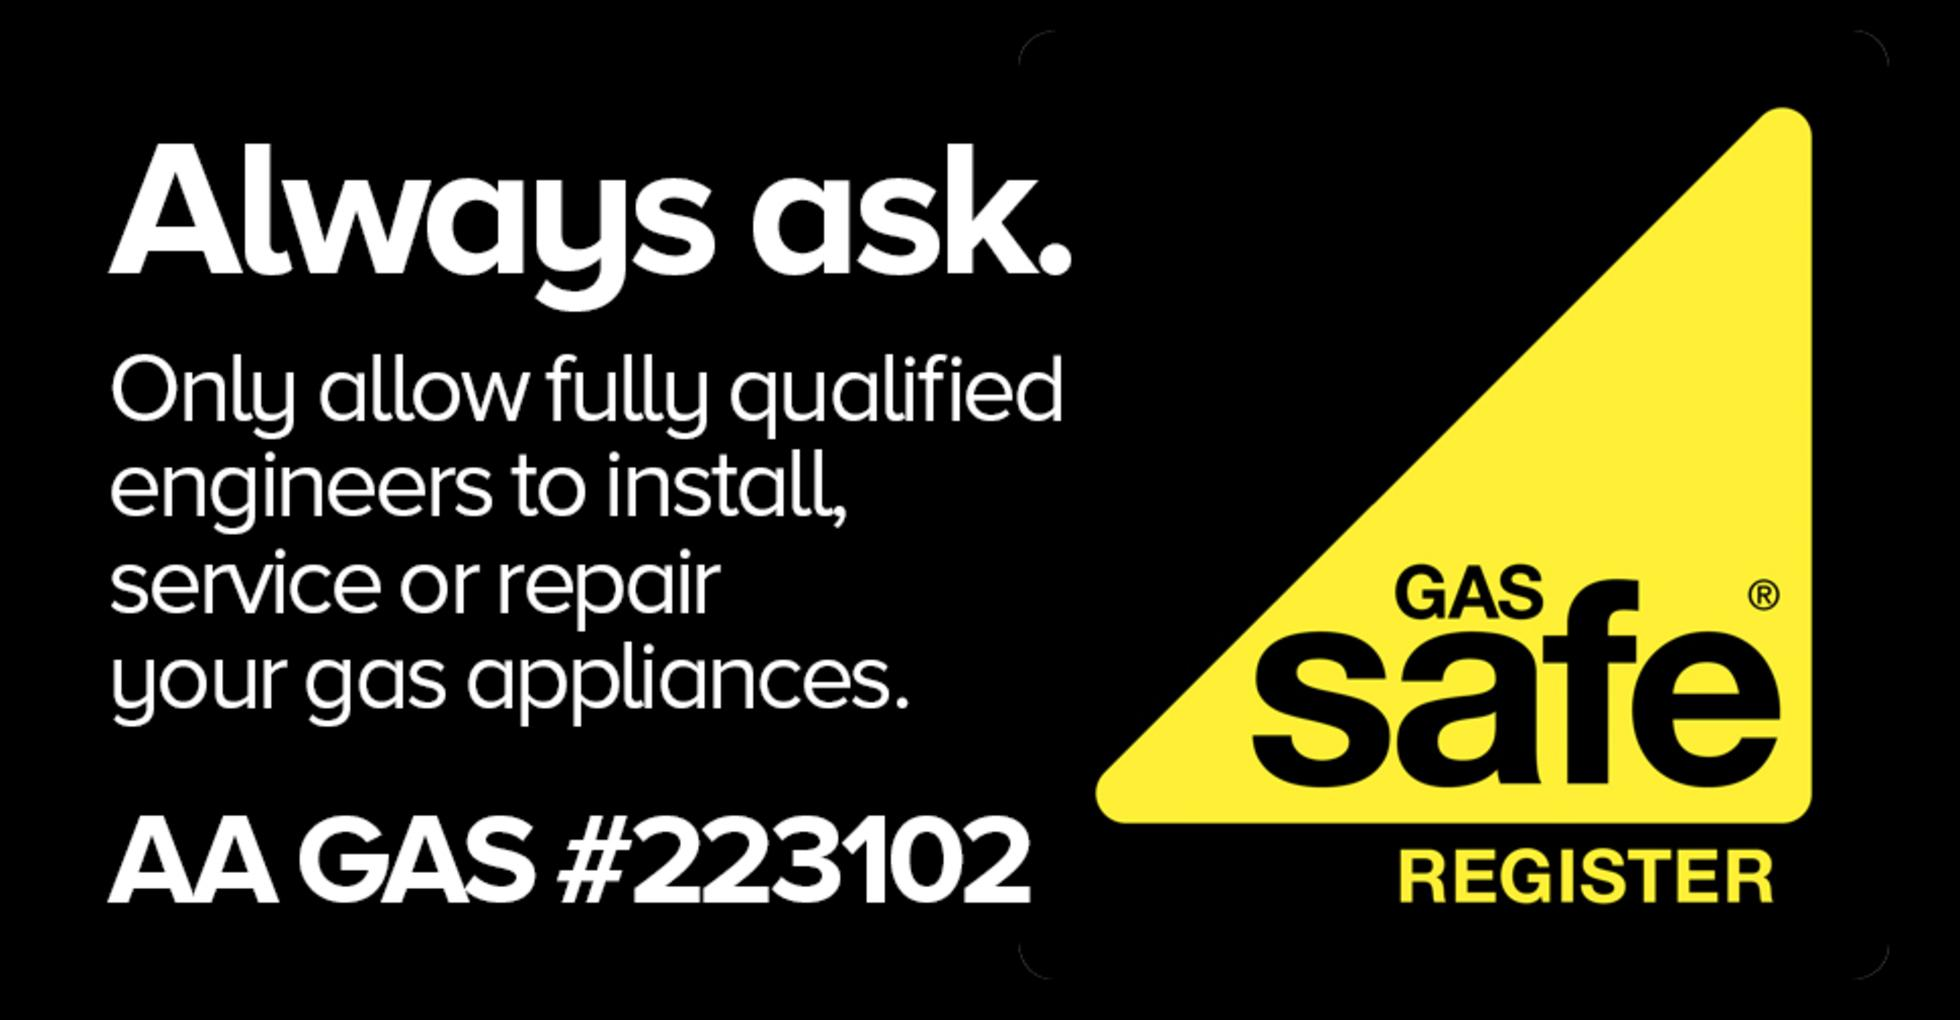 Aa gas gas safe